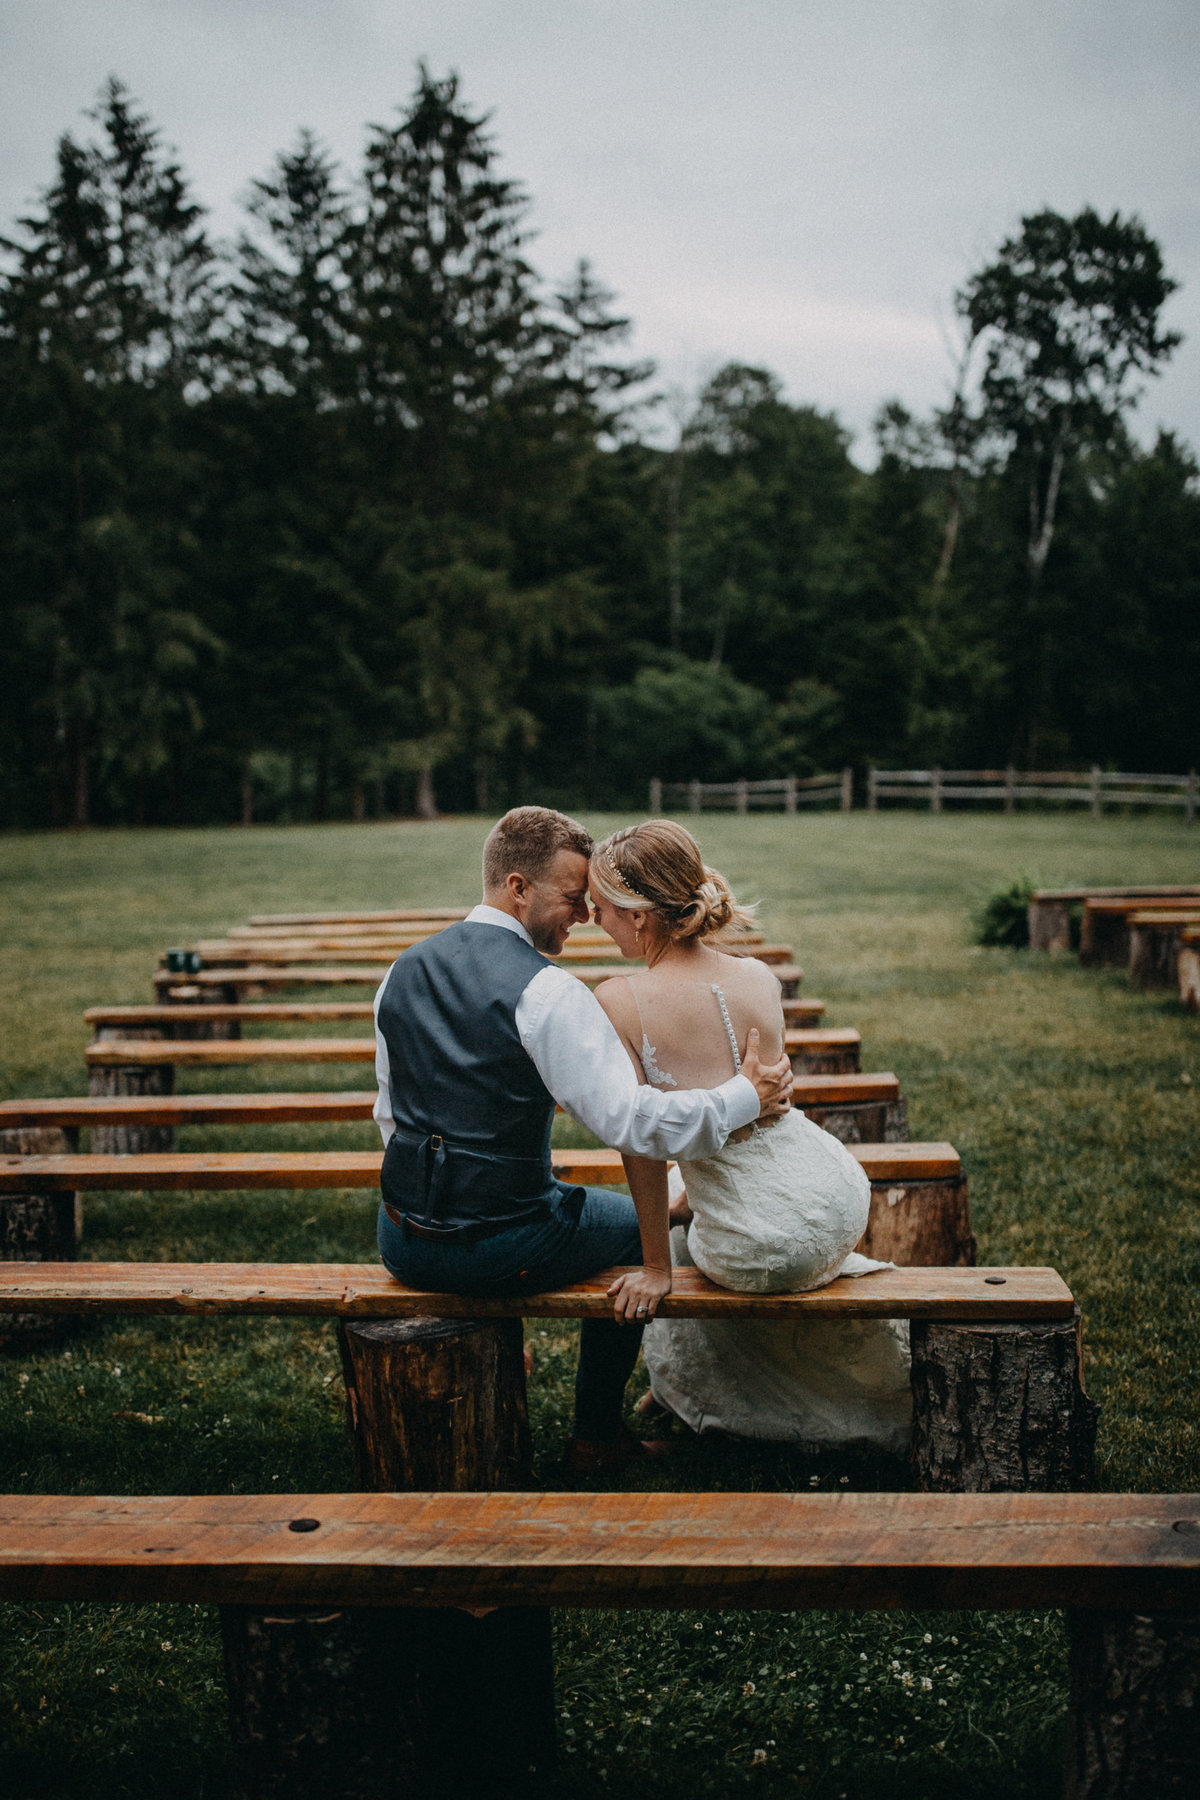 Bride and groom cuddling on bench